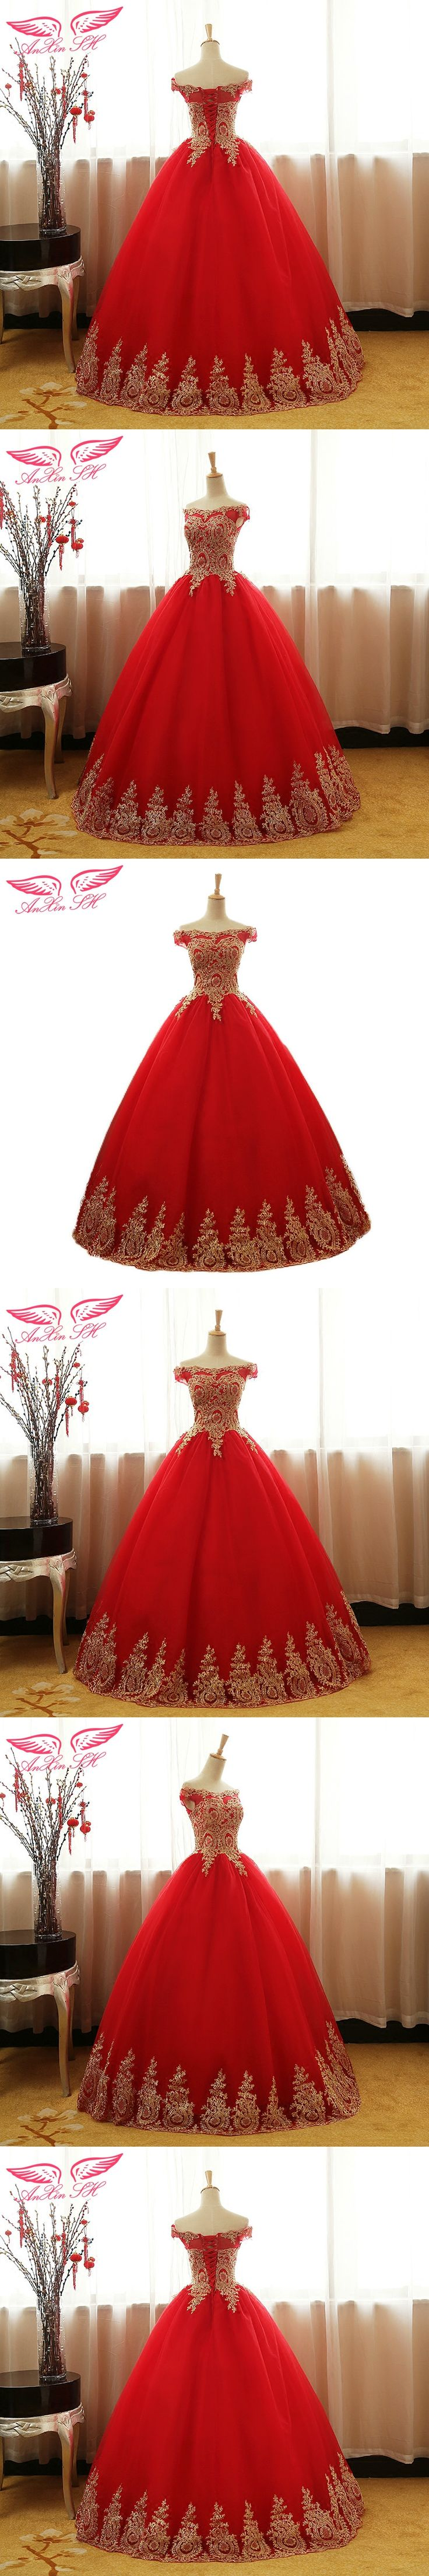 AnXin SH Princess red lace golden flower evening dress golden lace red evening dress golden pattern flower red evening dress